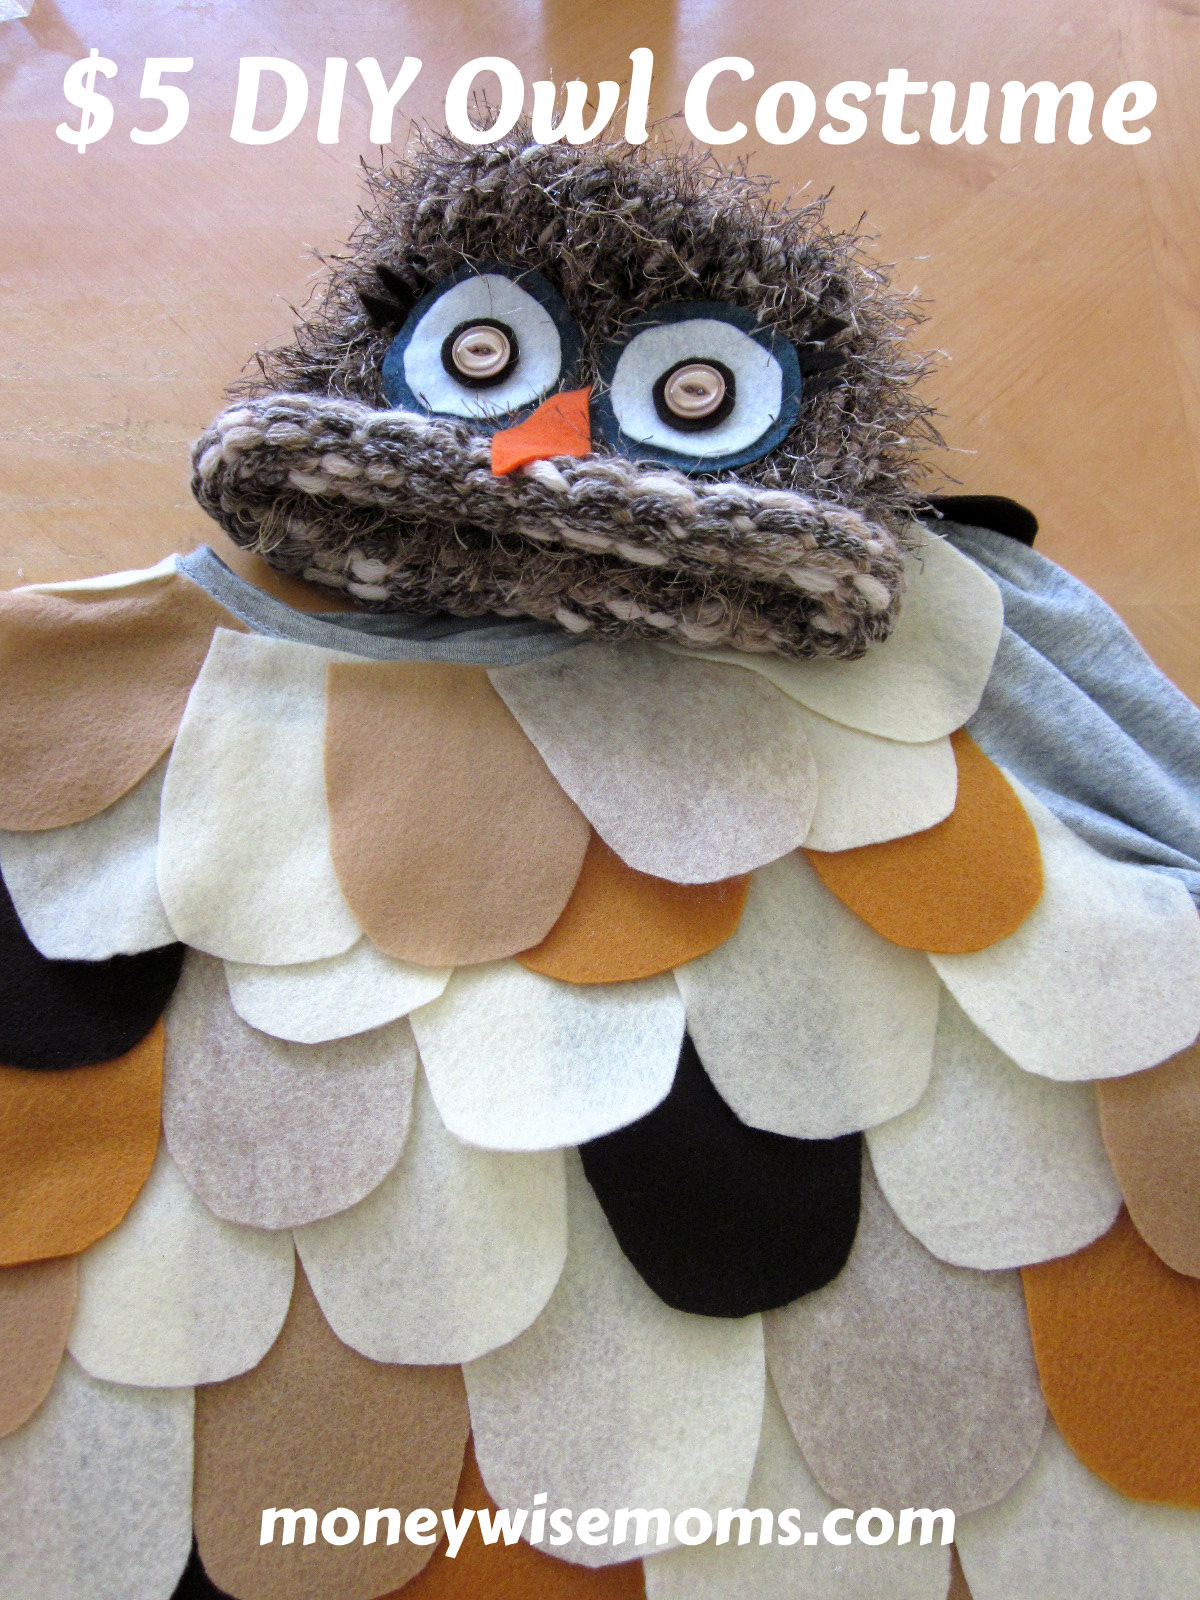 Best ideas about DIY Owl Costumes . Save or Pin The Most Adorable $5 DIY Owl Costume Moneywise Moms Now.